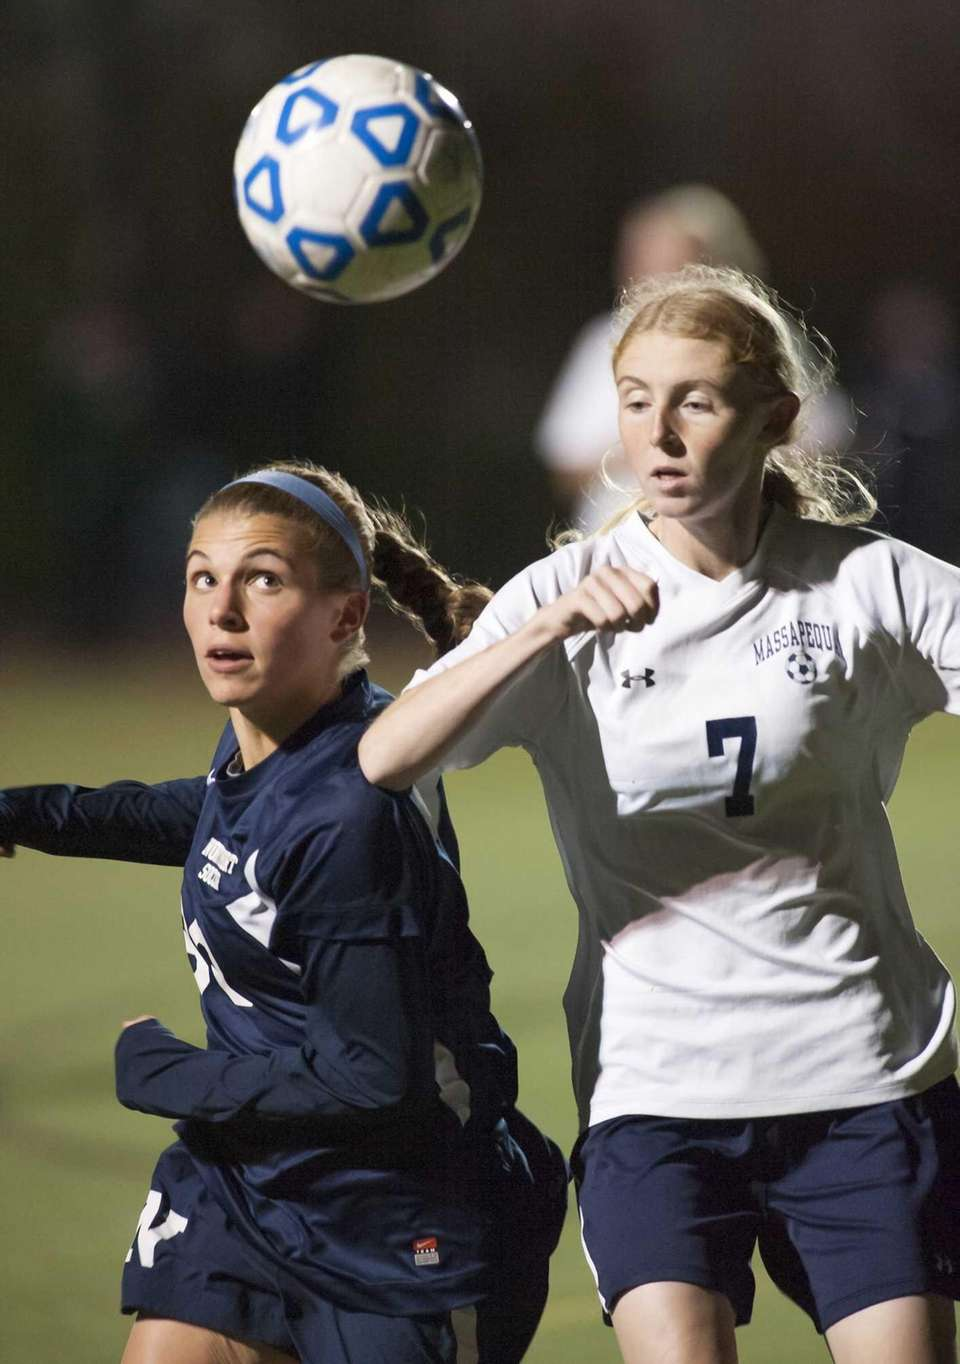 Northport's Cybele Laisney (30, left) keeps her eye